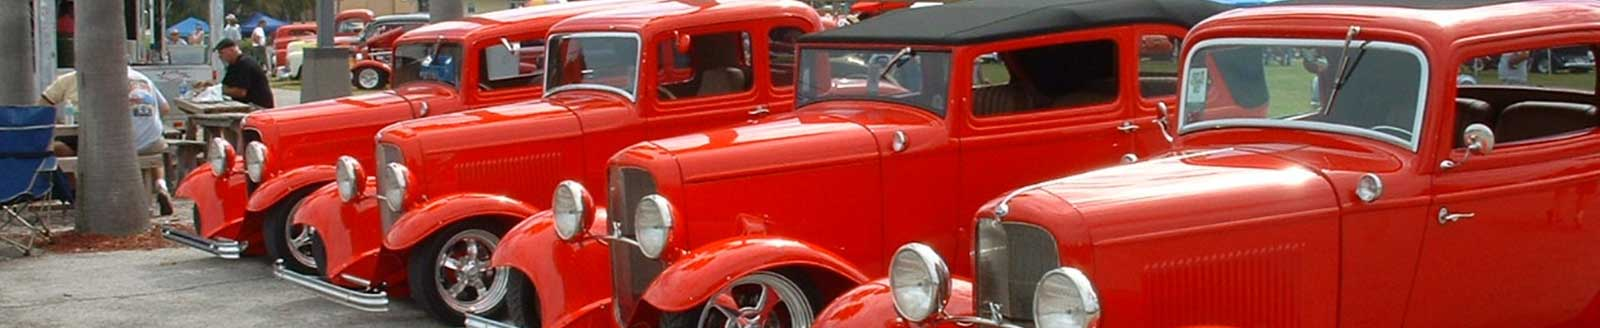 Central Florida Street Rod Association - contact us